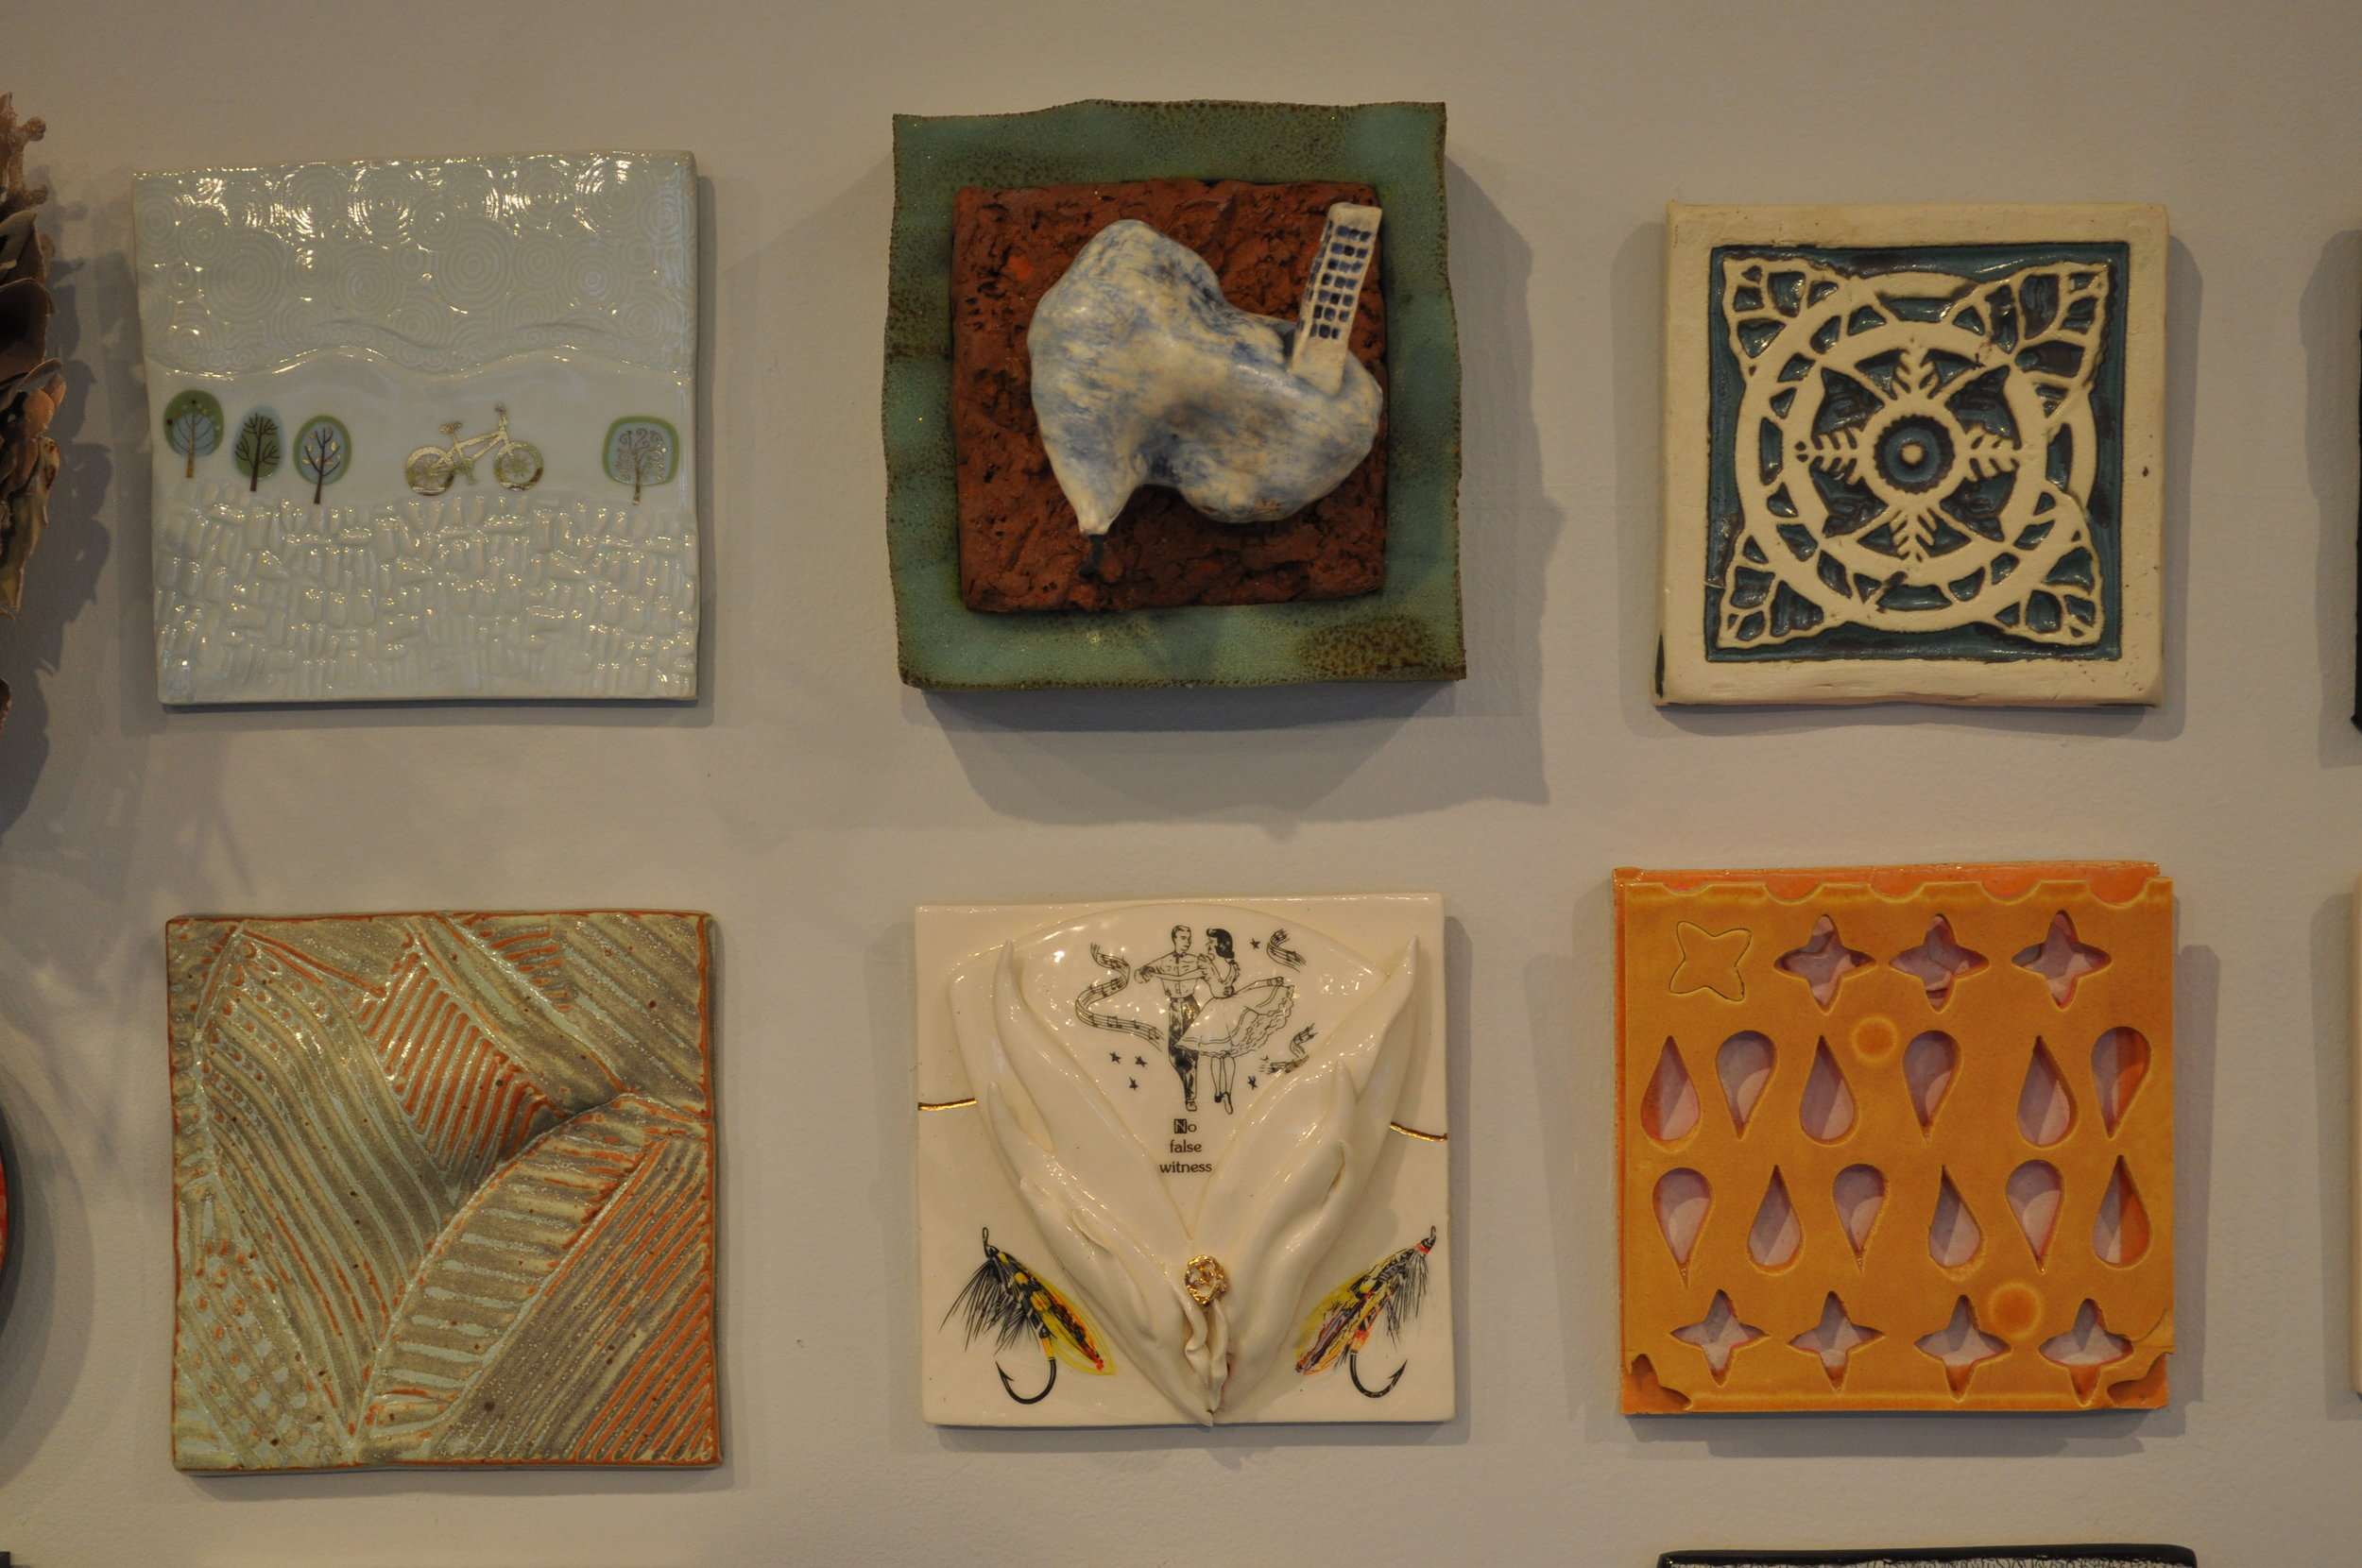 1.  Loren Maron,  White Tile With Bicycle  $95  2 . Rick Parsons,  High-Rise  $200  3 . Sana Musasama,  Tile 1 $80  4. Peter Arnow,  Untitled $50  5.  Anne Mulford,  Alluring  $125  6.  Susan Tunick,  Tan Hald $350